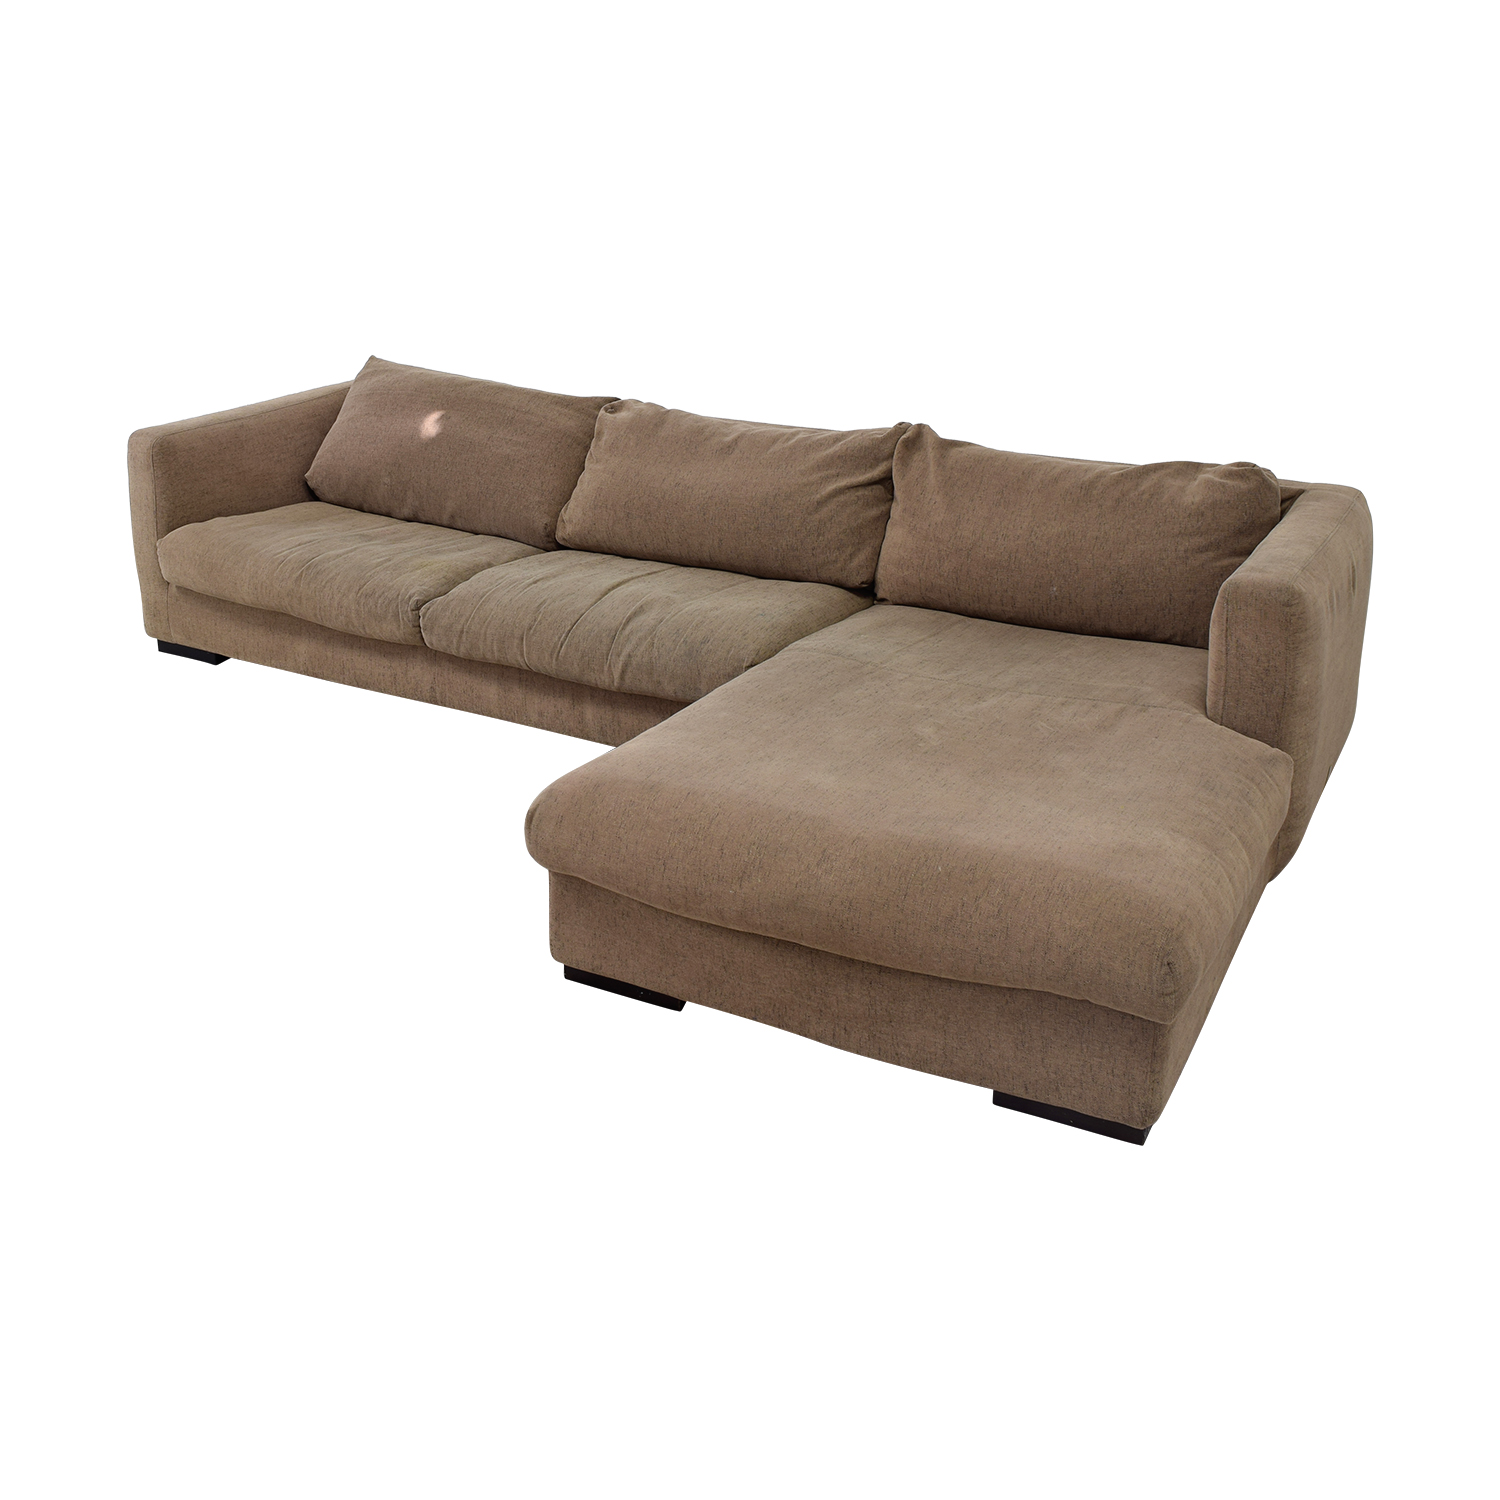 Plummers Furniture Plummers Furniture Tan Down Feather Chaise Sectional for sale